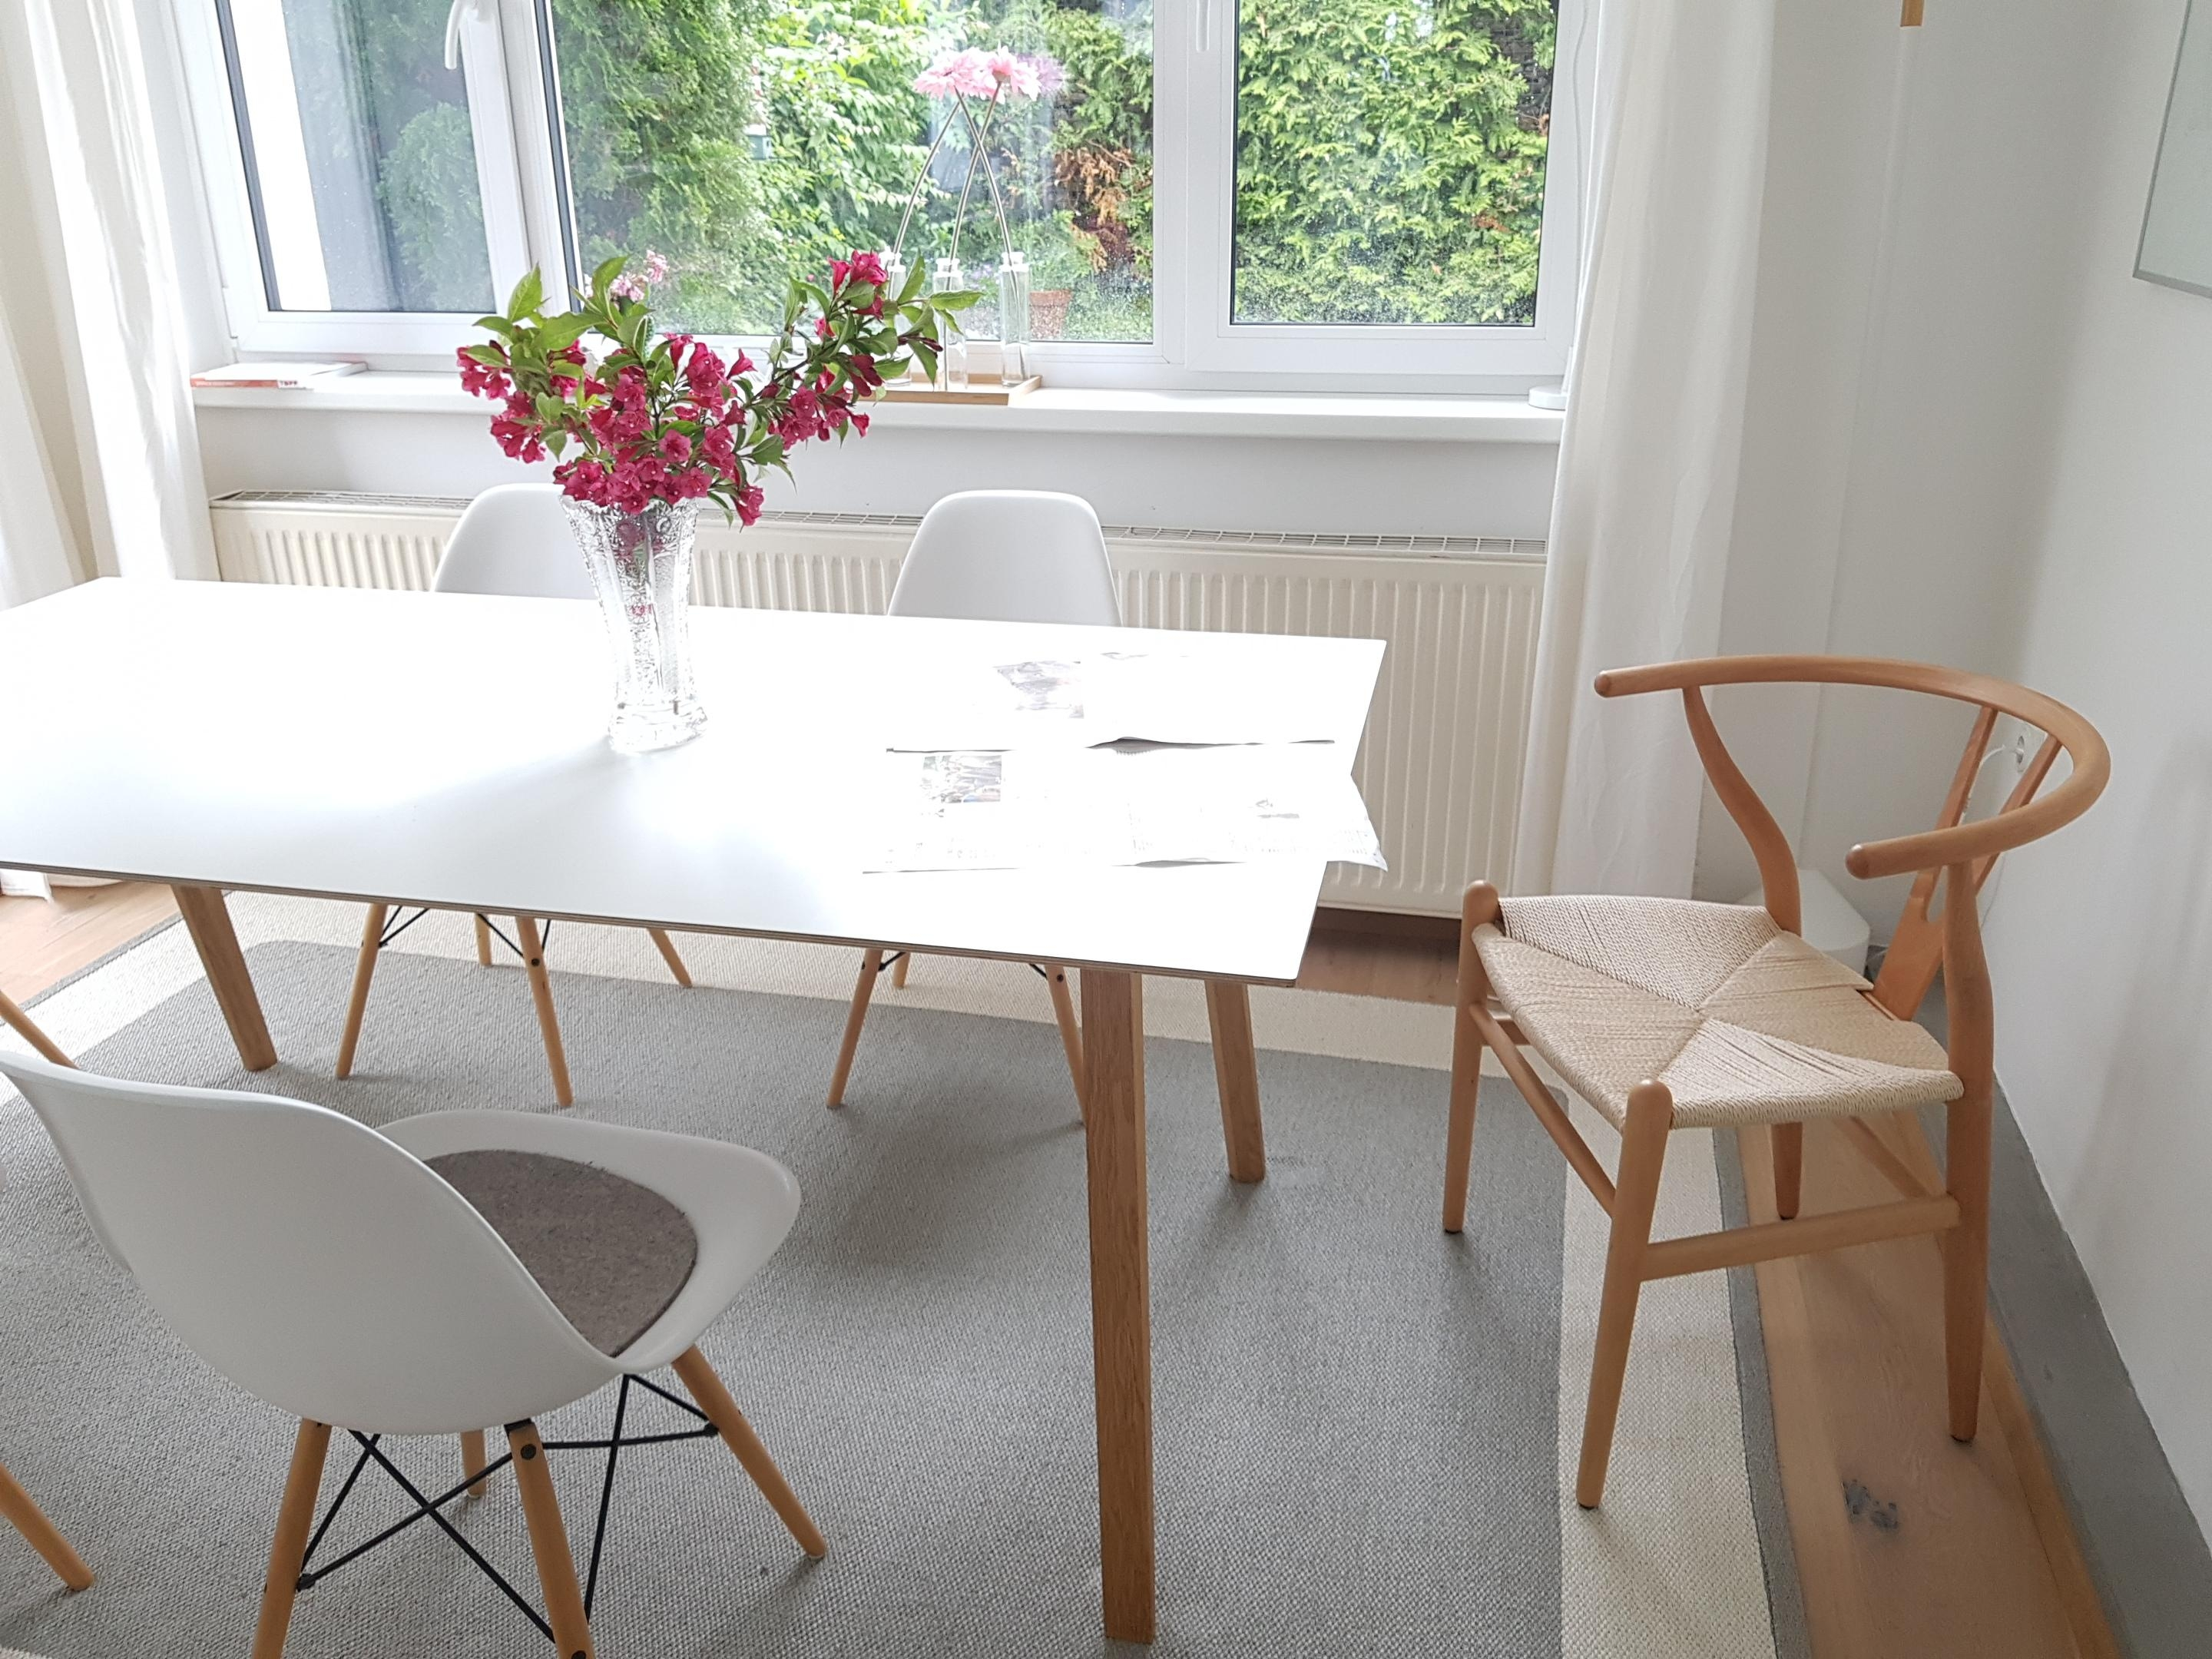 Wegner CH24 Wishbone Chair - ein Designklassiker. #wishbonechair #danishdesign